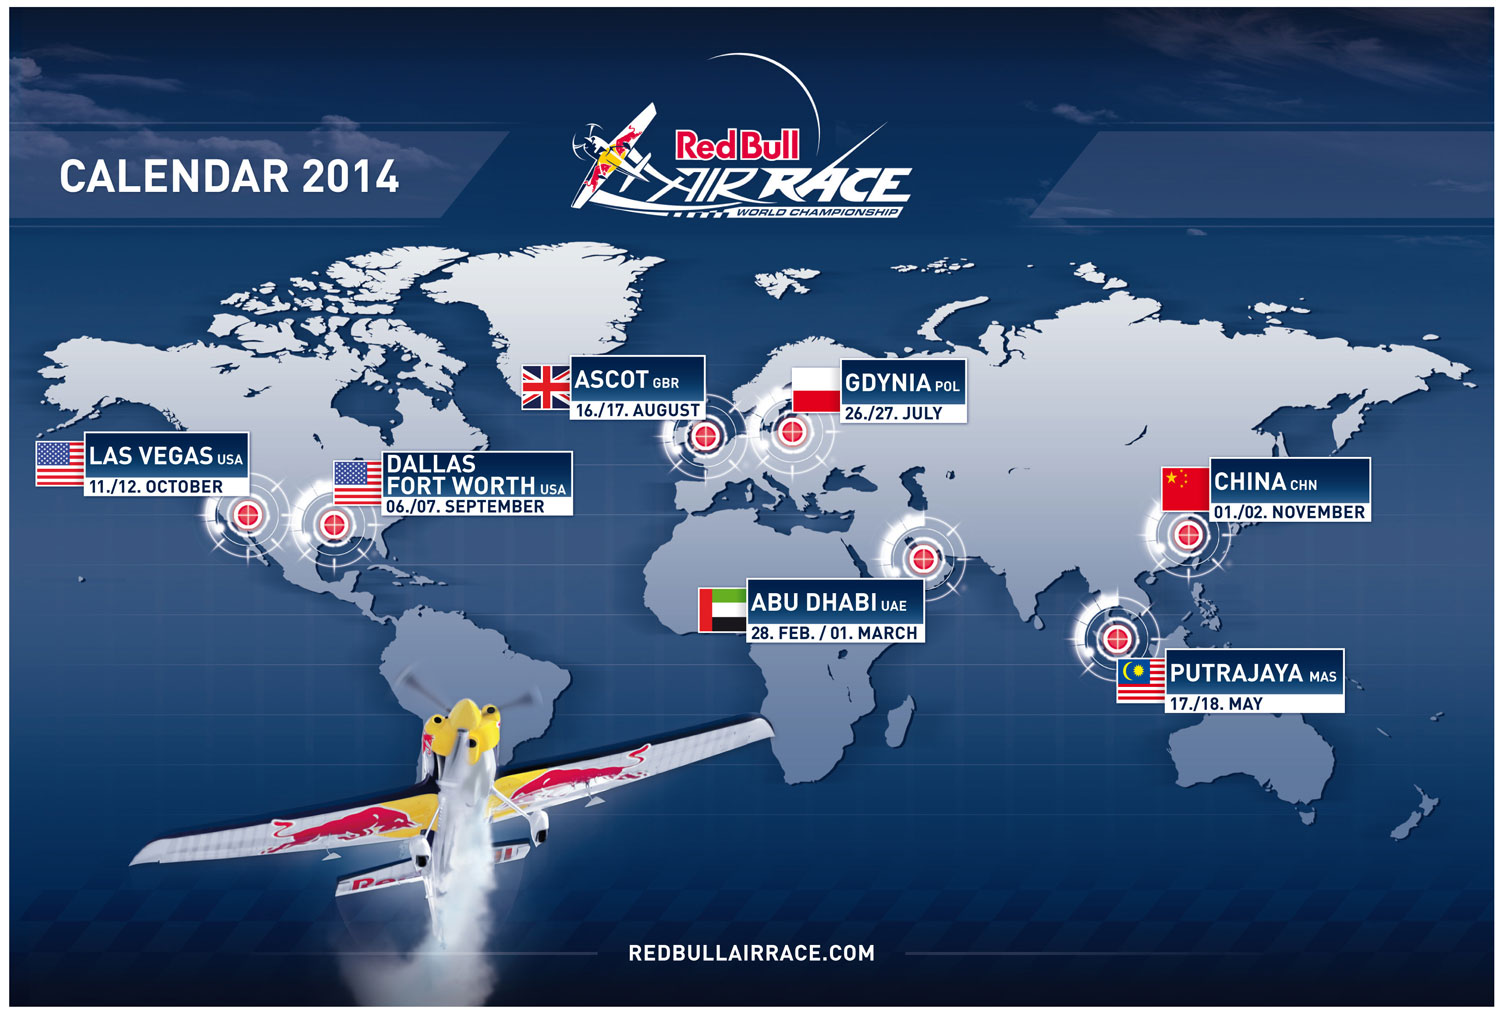 Sieben Termine Wo Das Air Race 2014 Station Machtair Race Speedweek